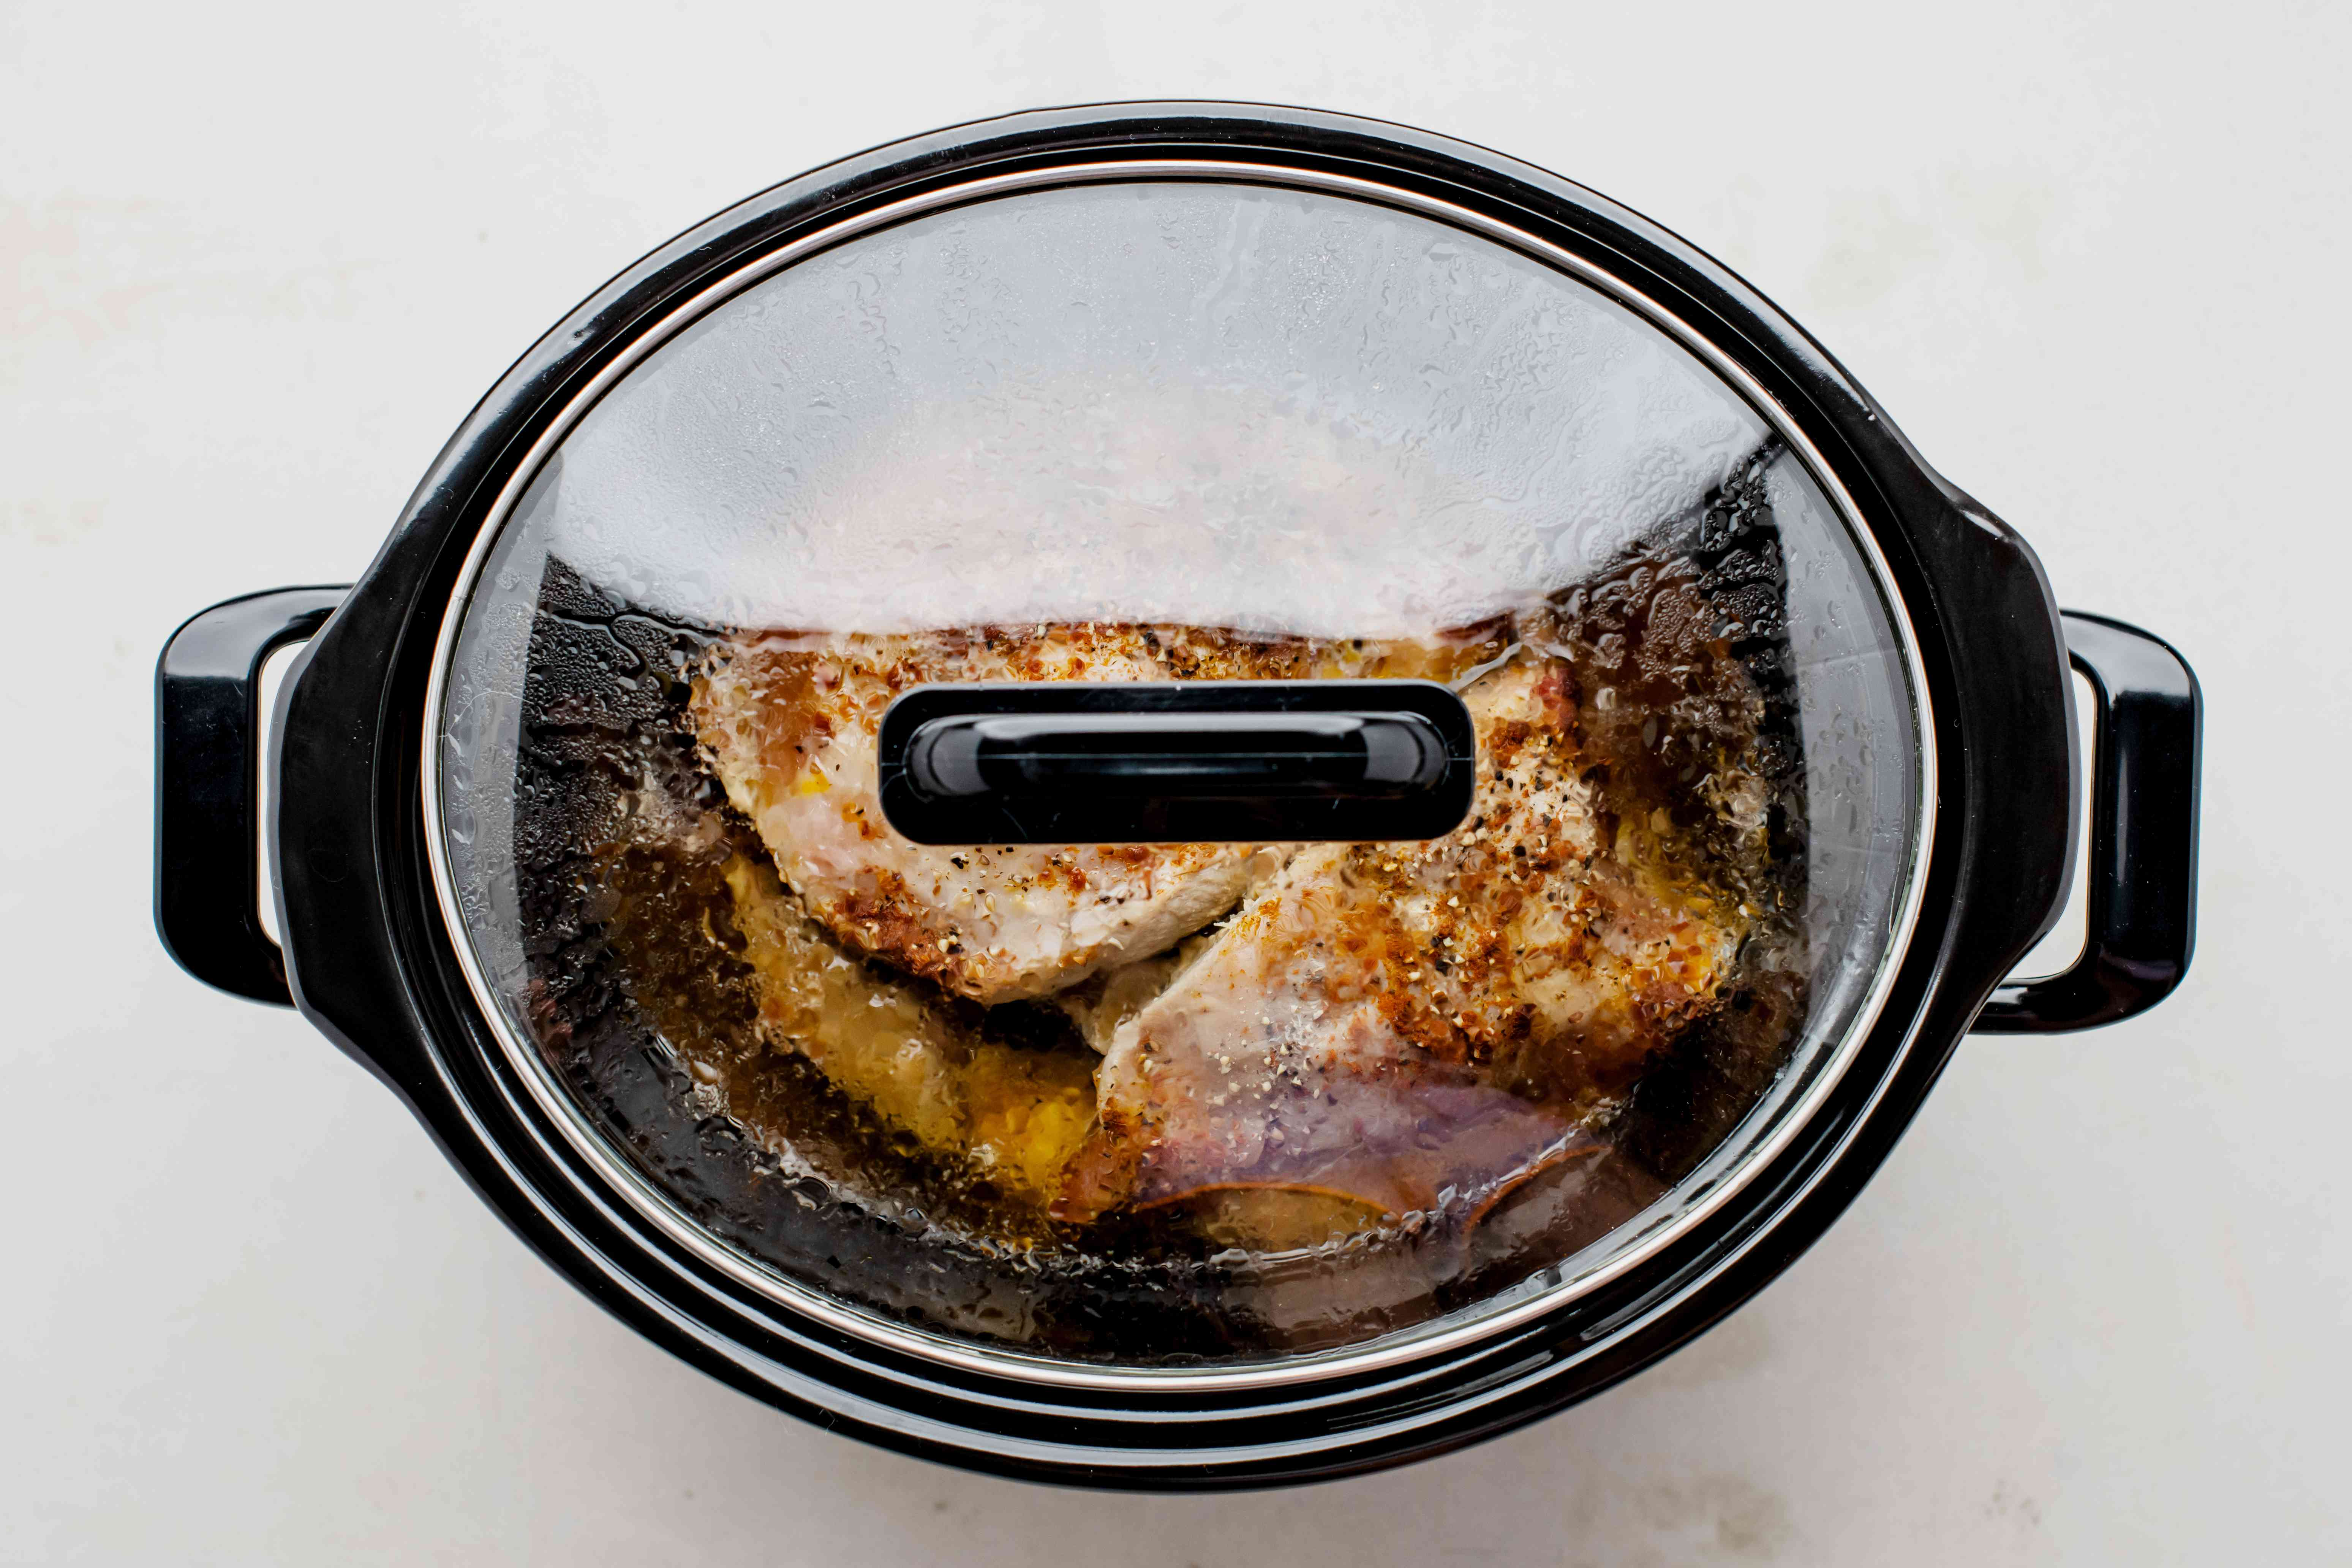 Pork in slow cooker with lid on